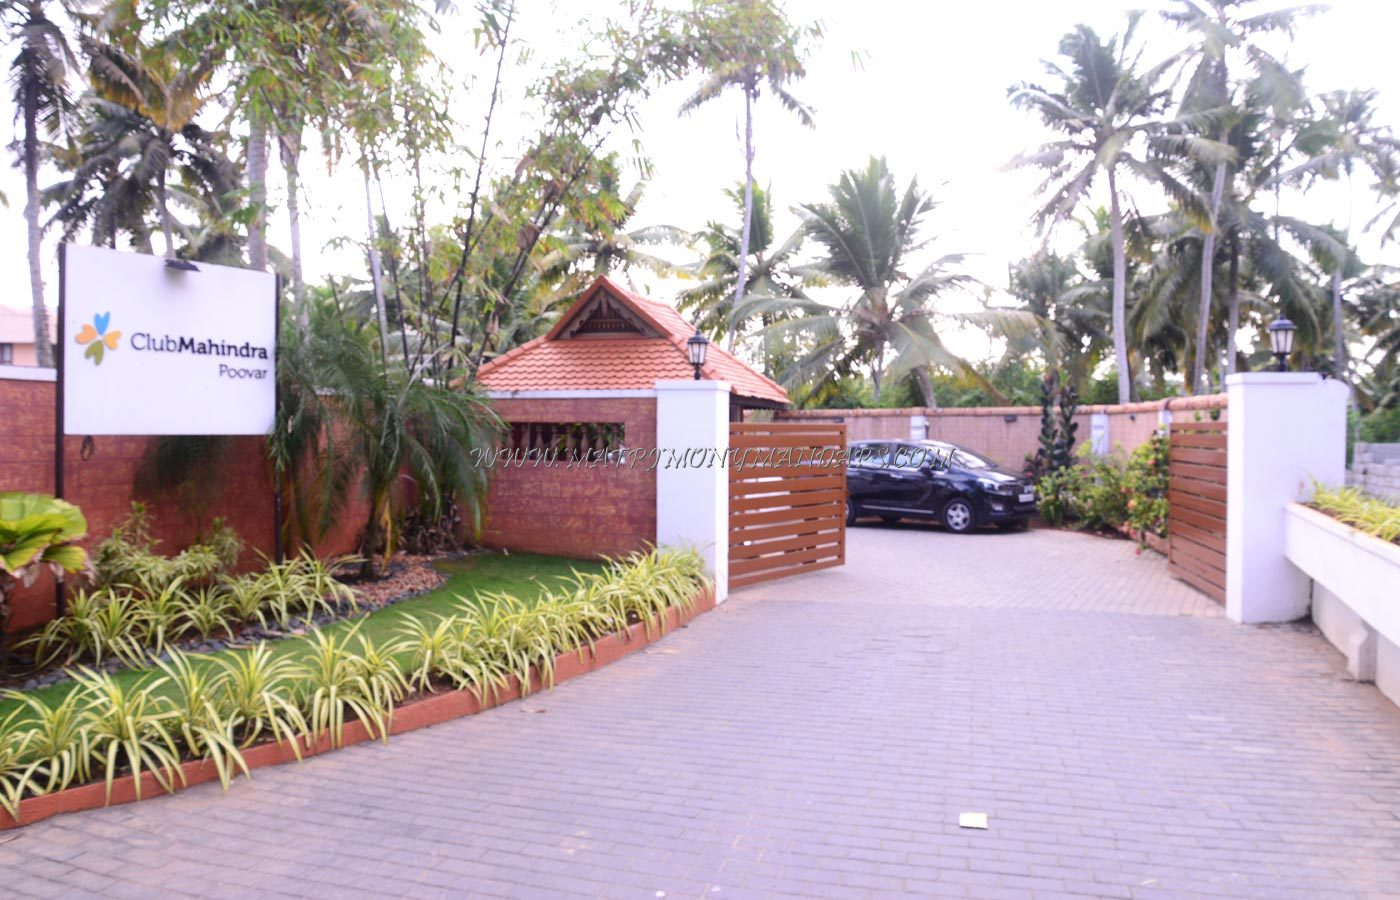 Find the availability of the Club Mahindra Kerala House (A/C) in Poovar, Trivandrum and avail special offers